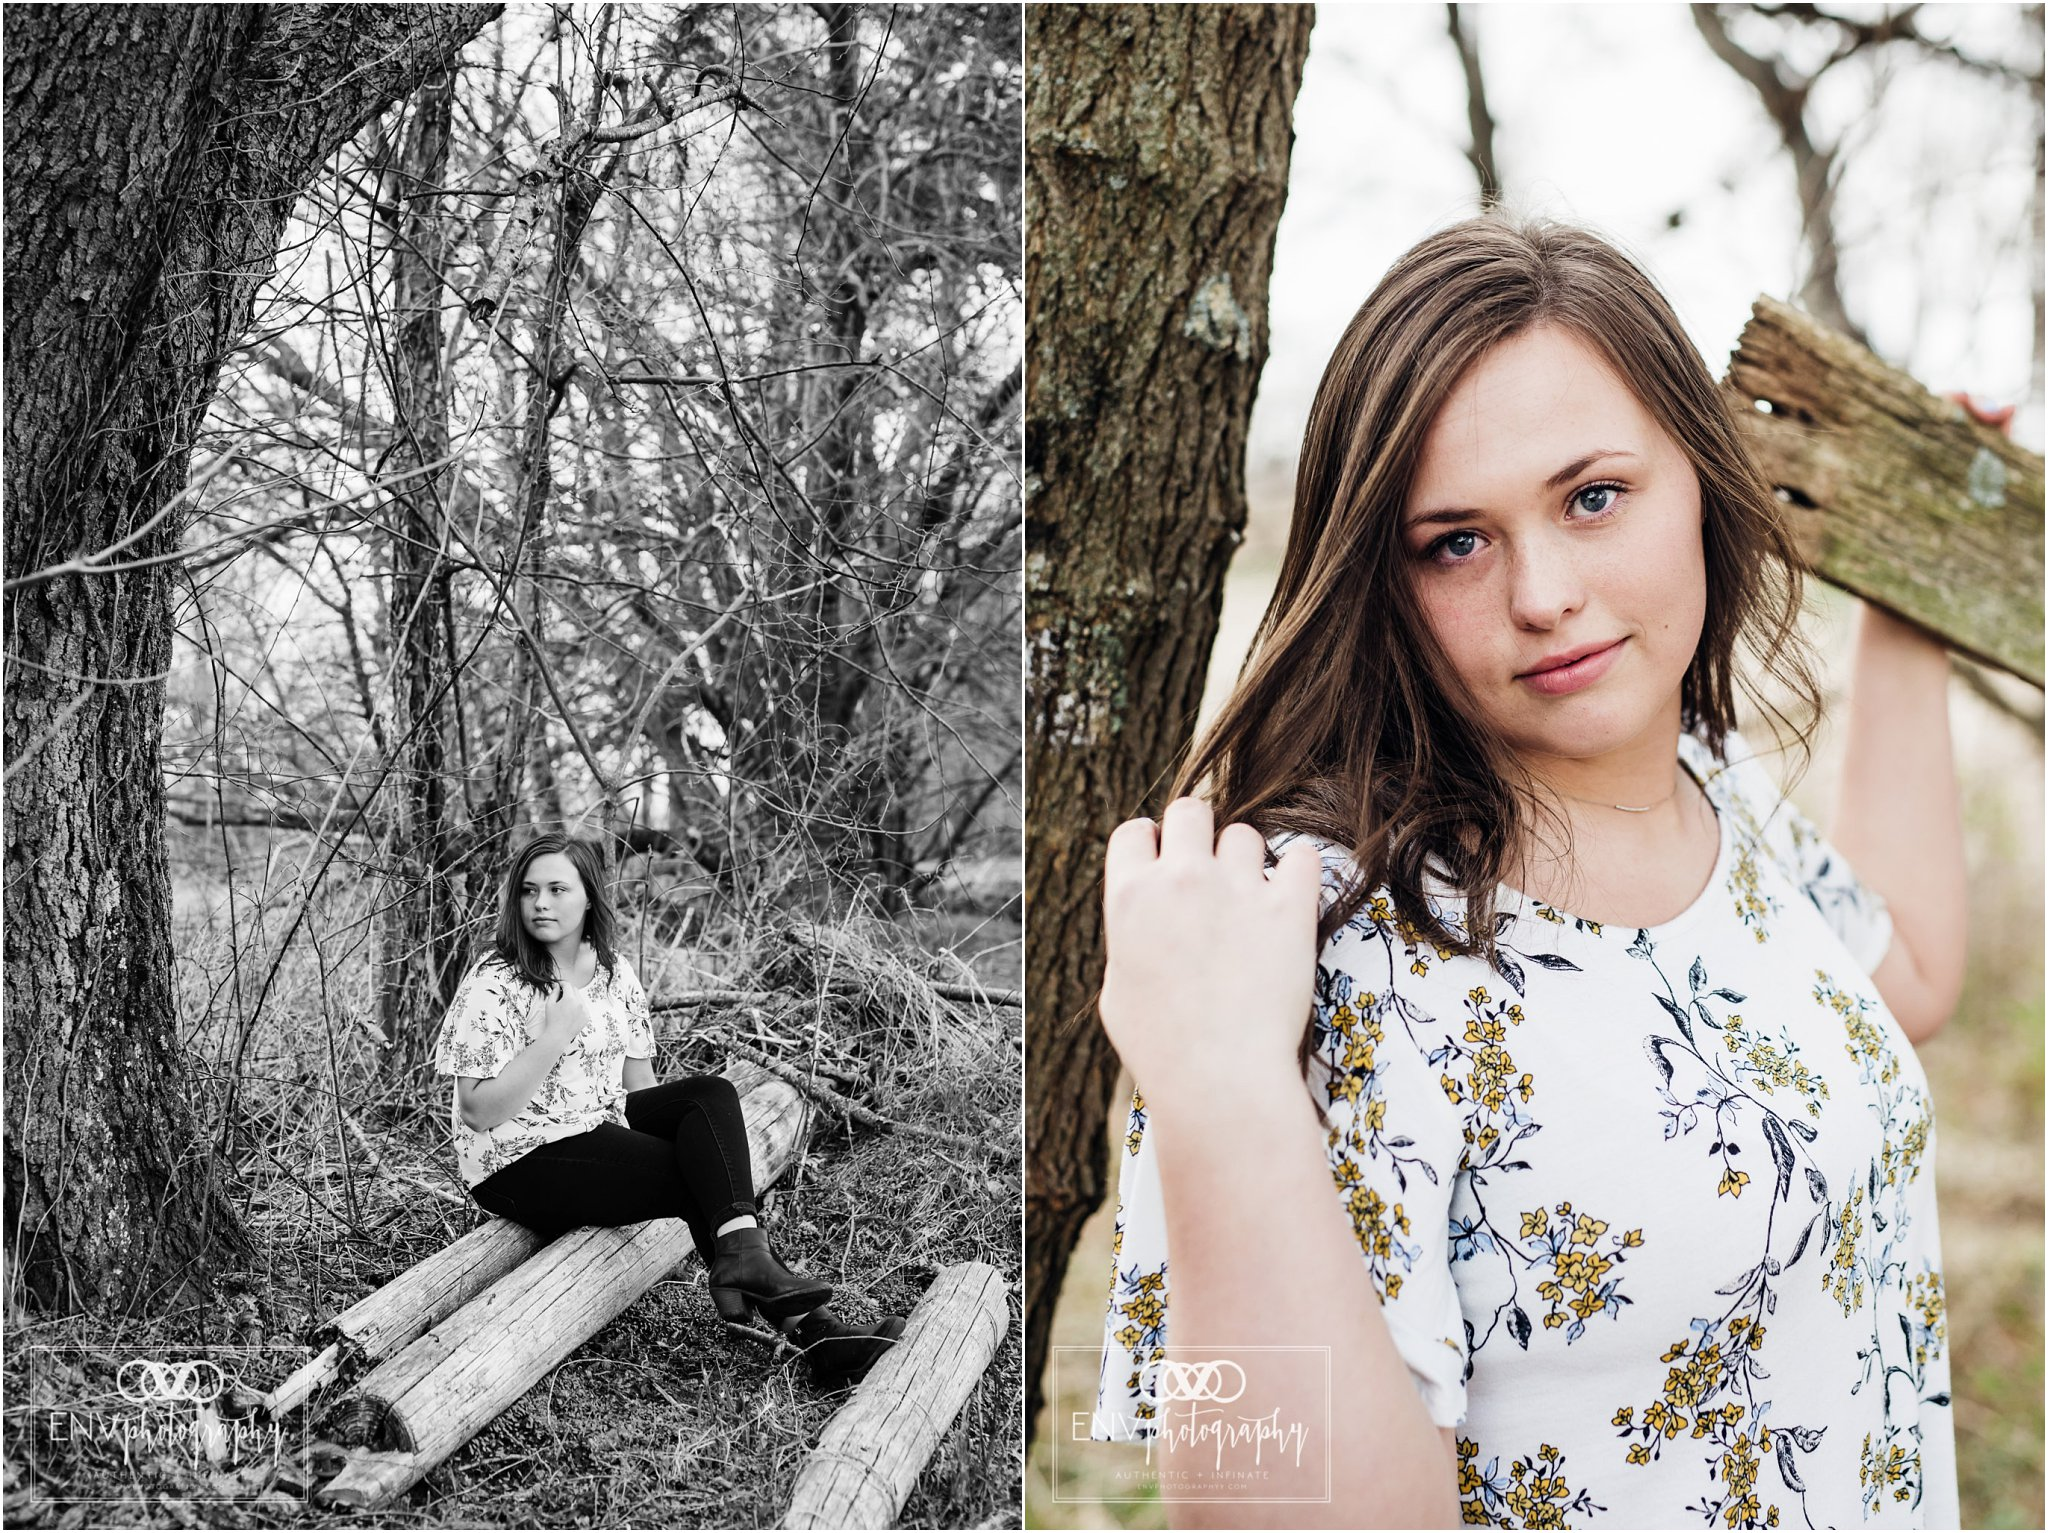 Mount Vernon Columbus Ohio Senior Photography 2018 Jasmine (29).jpg